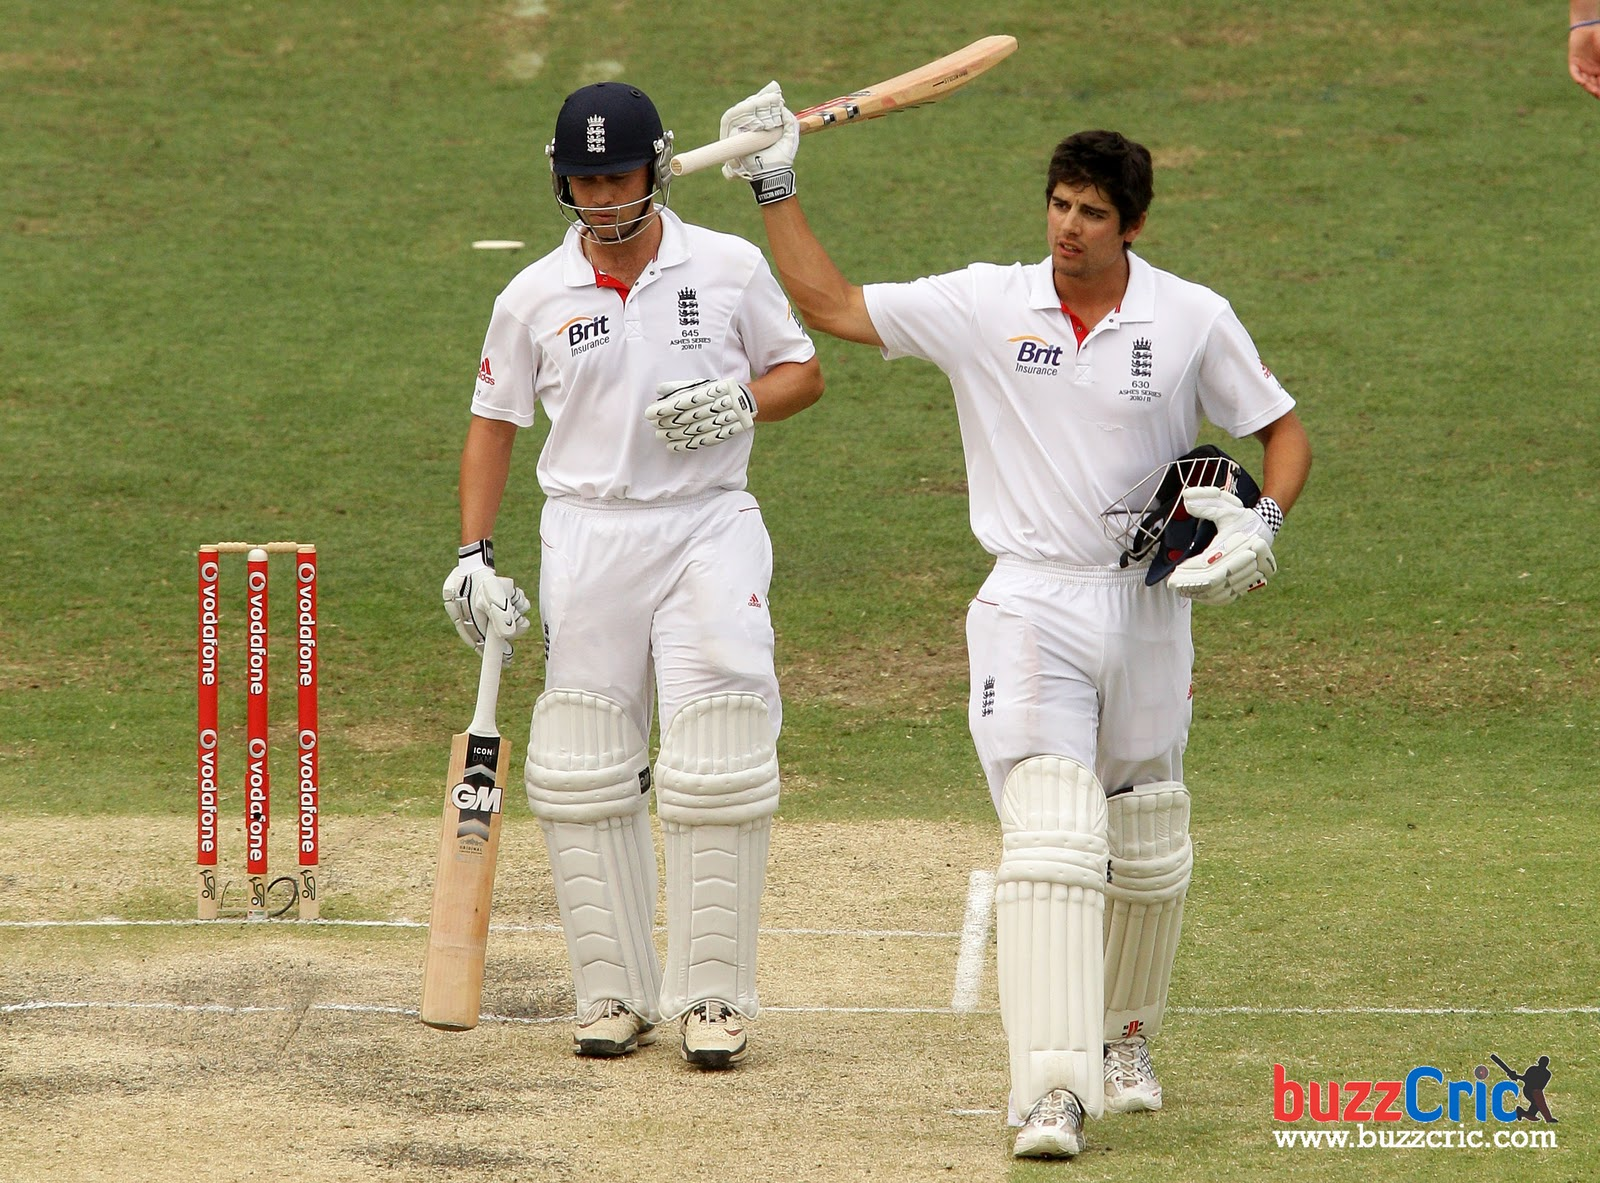 England Cricket Player Alastair Cook Image Collections